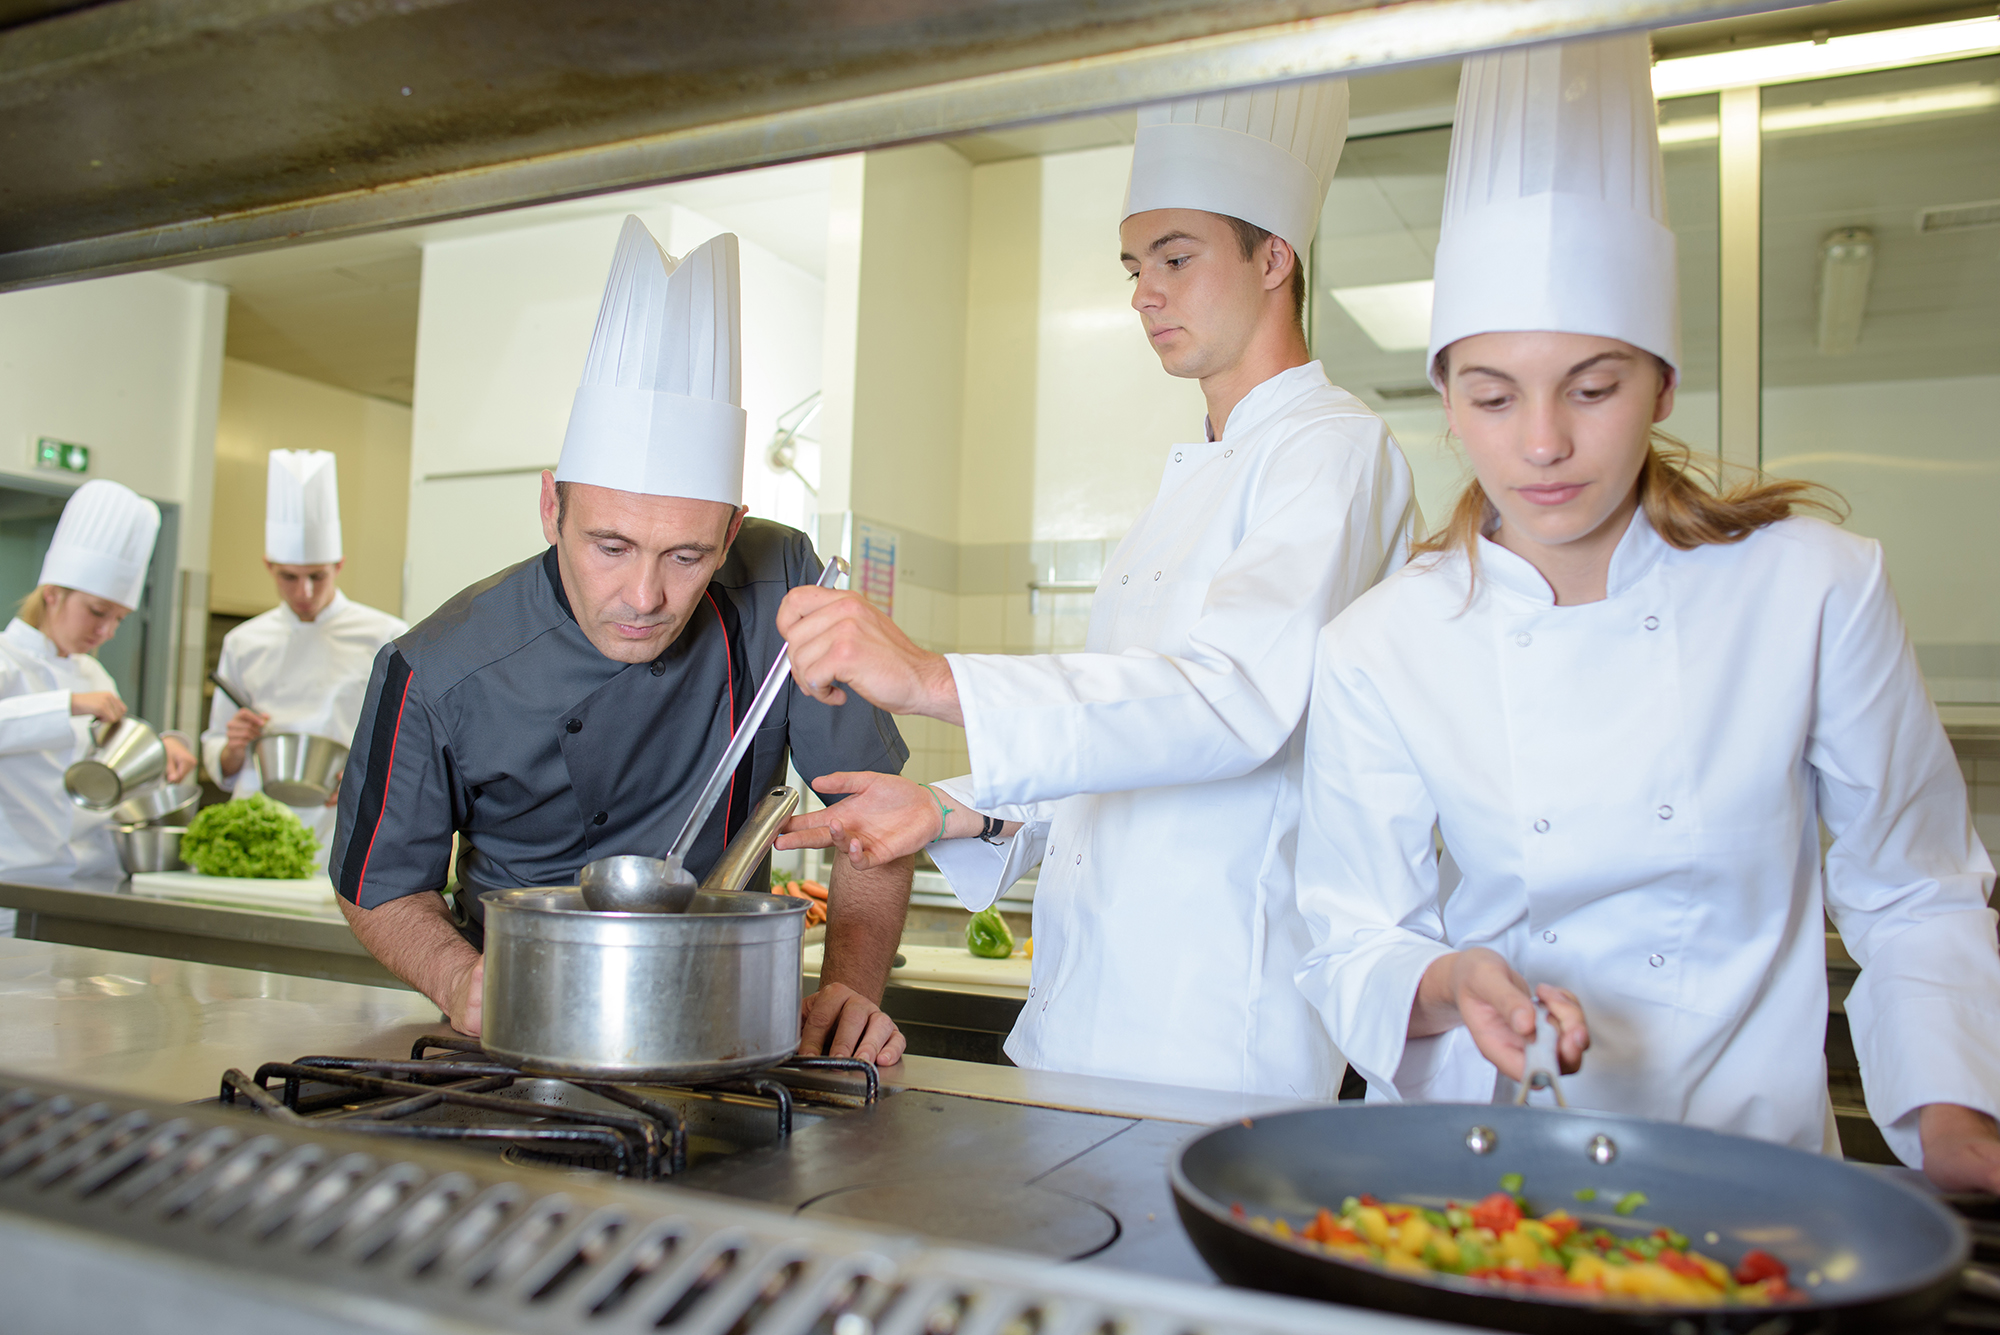 Chef observing trainee cooks